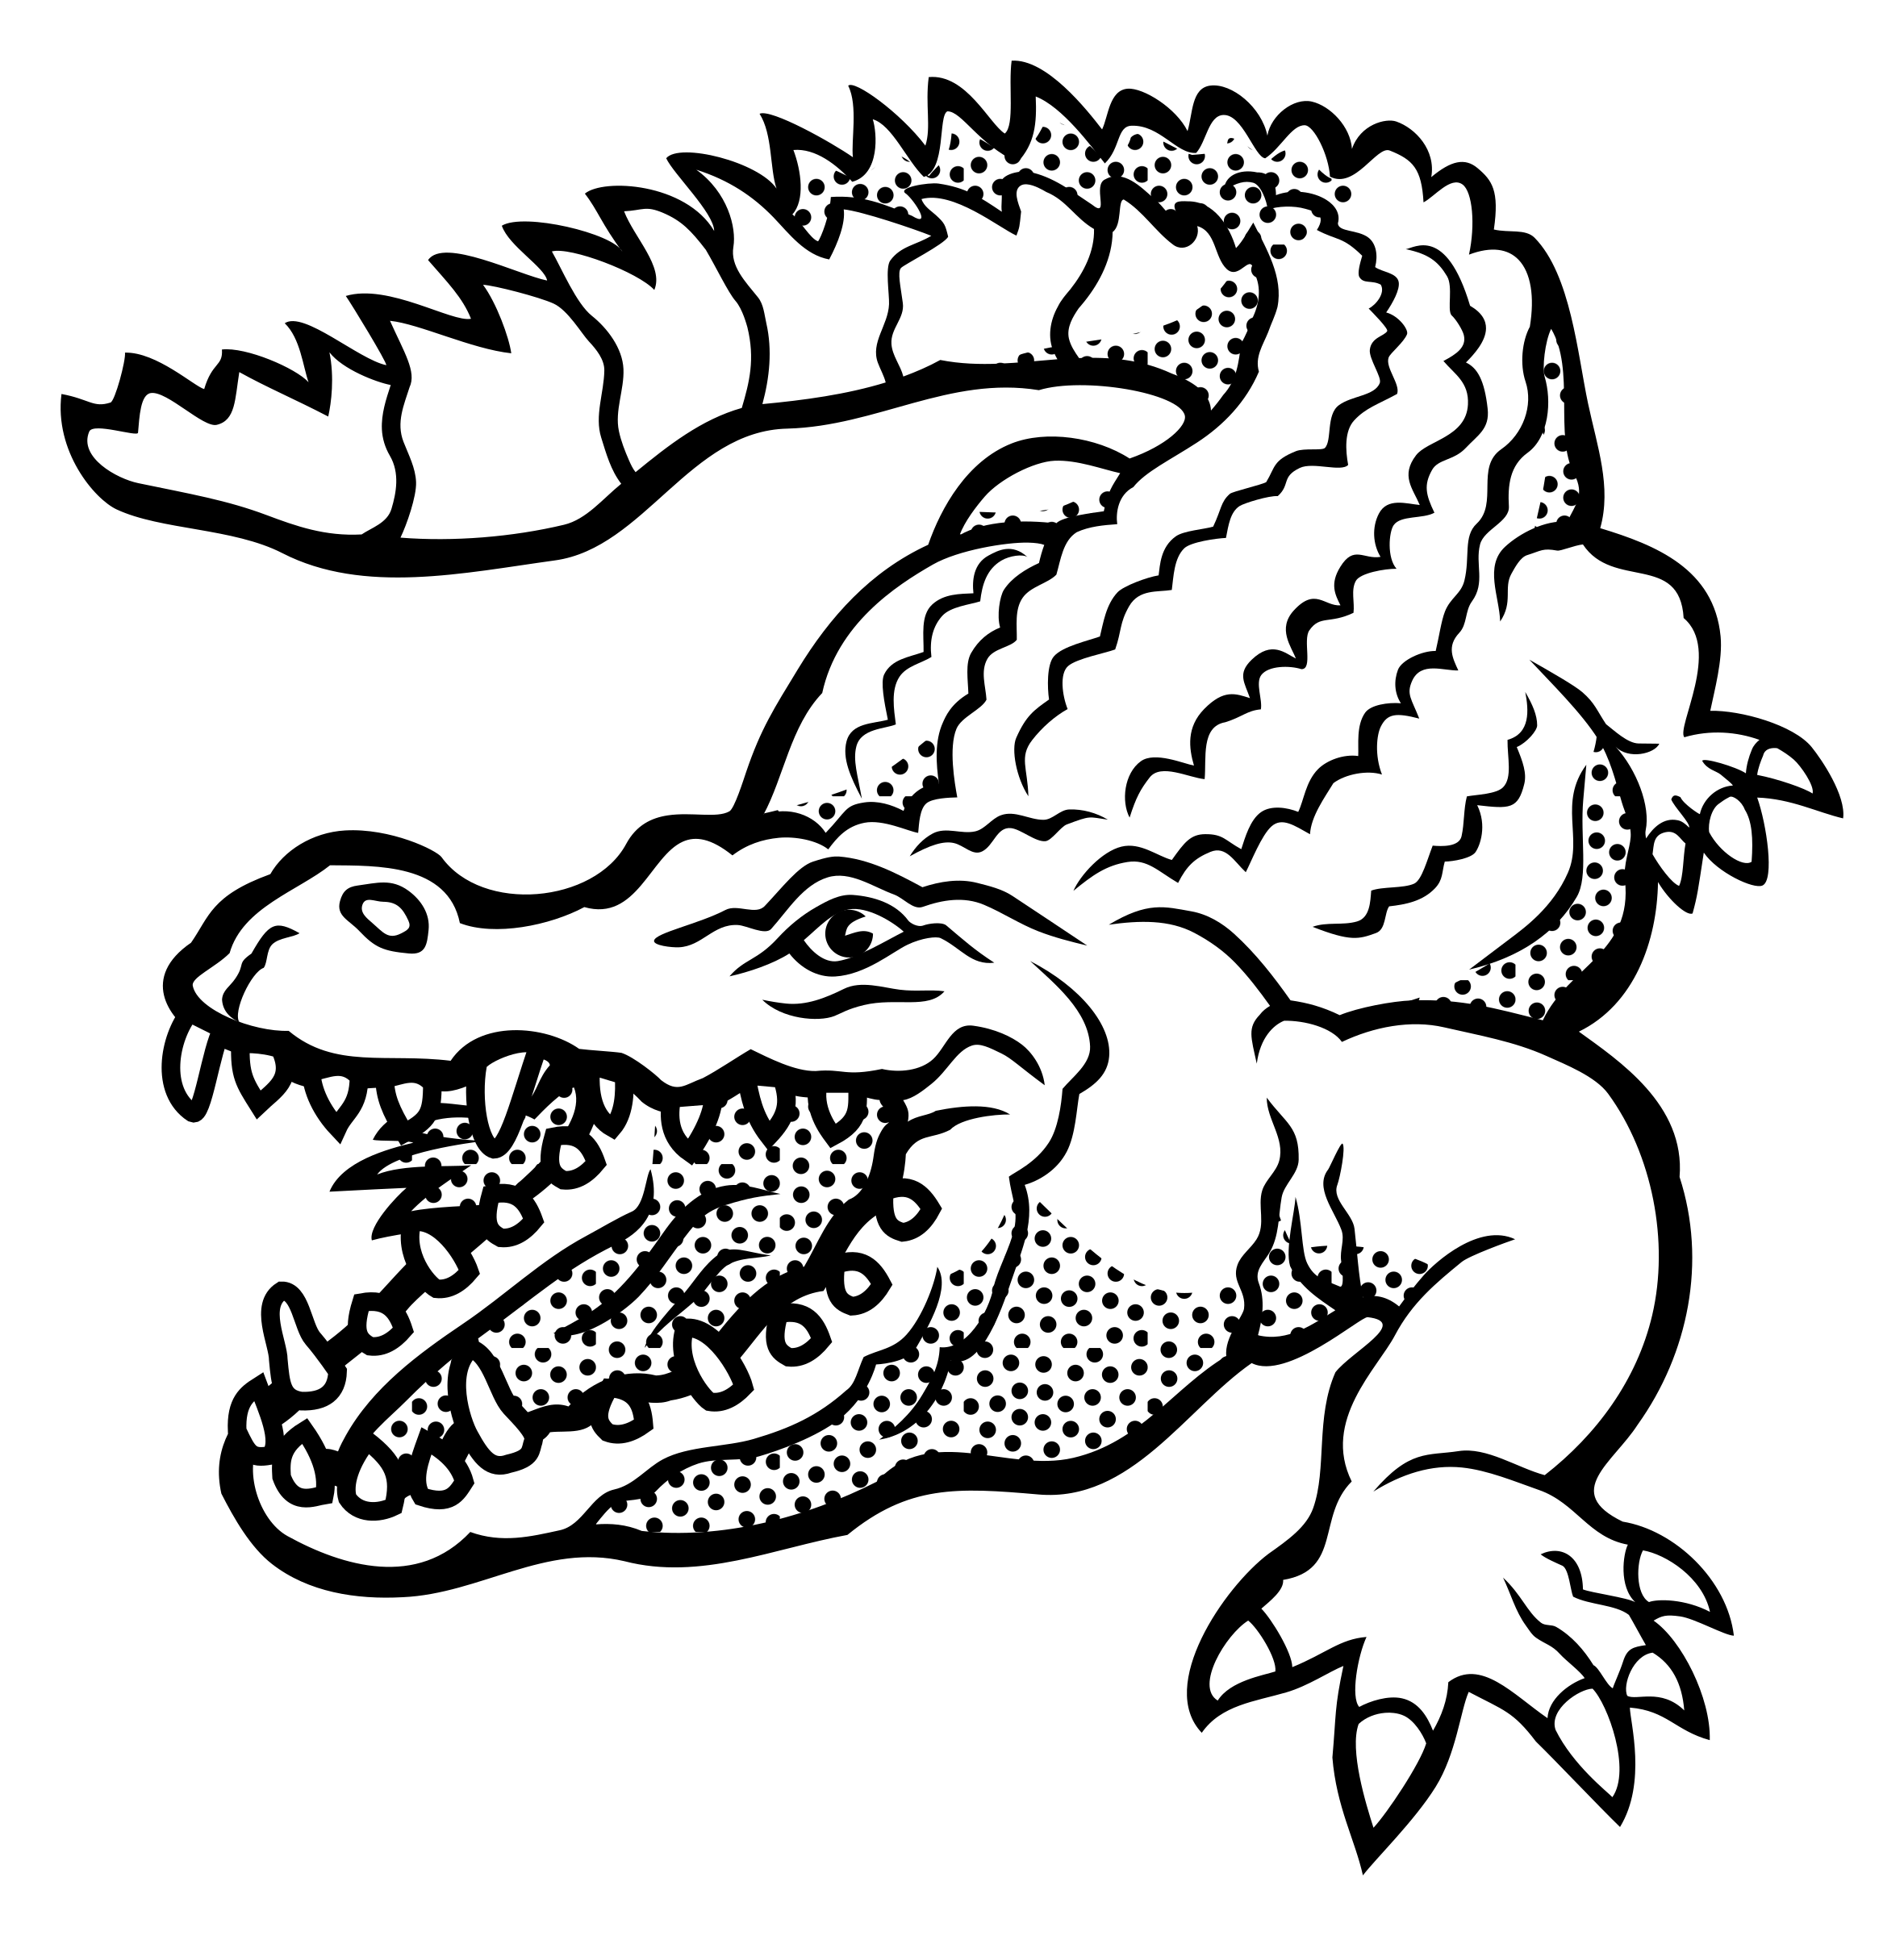 Turkey aligator clipart jpg black and white stock Crocodile Outline Drawing at GetDrawings.com | Free for personal use ... jpg black and white stock